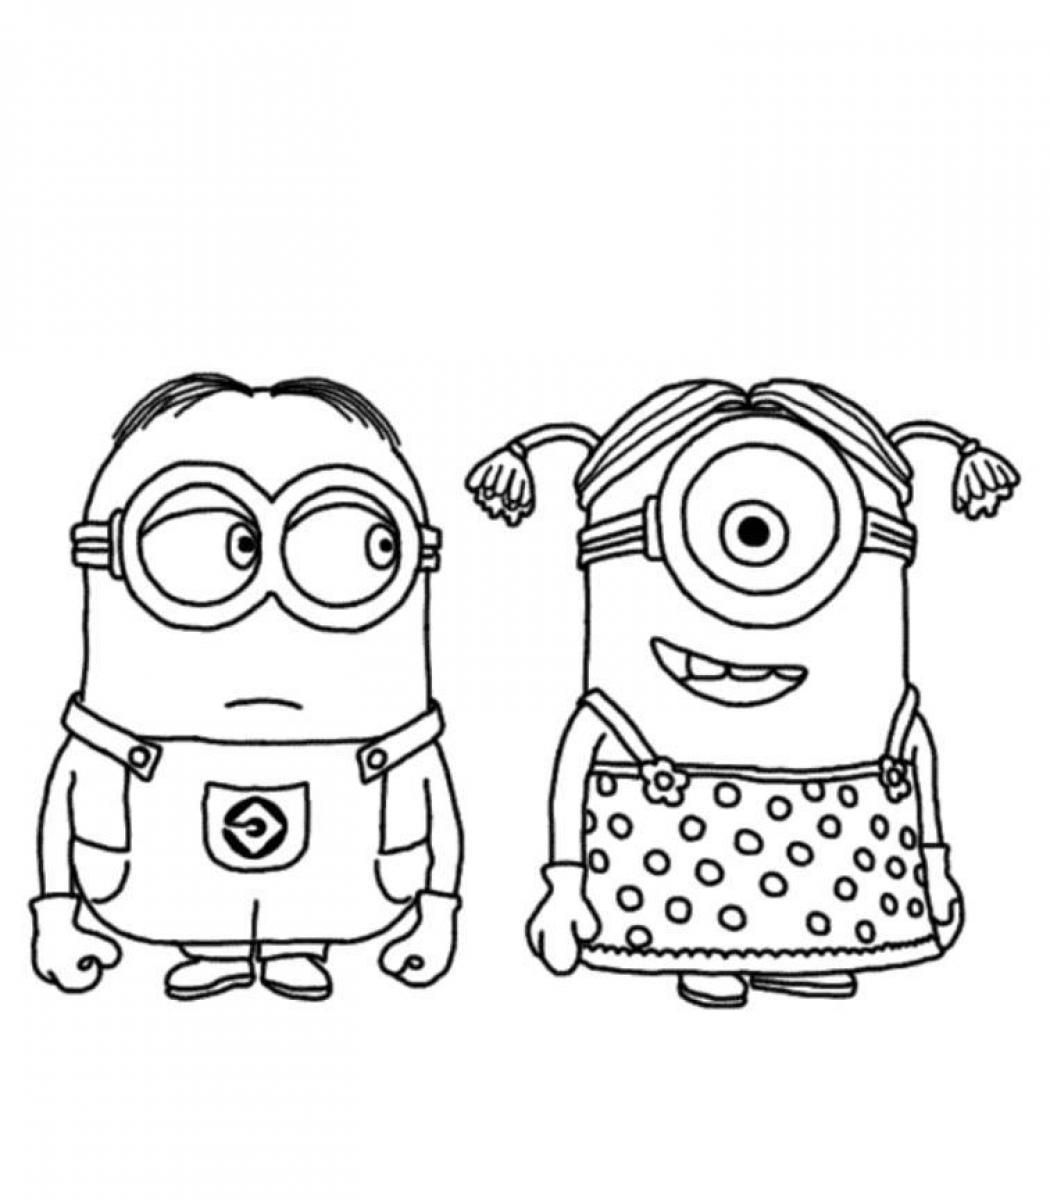 Minion maid coloring pages - Minion Coloring Pages Printable Minion Coloring Pages Free Minion Coloring Pages Online Minion